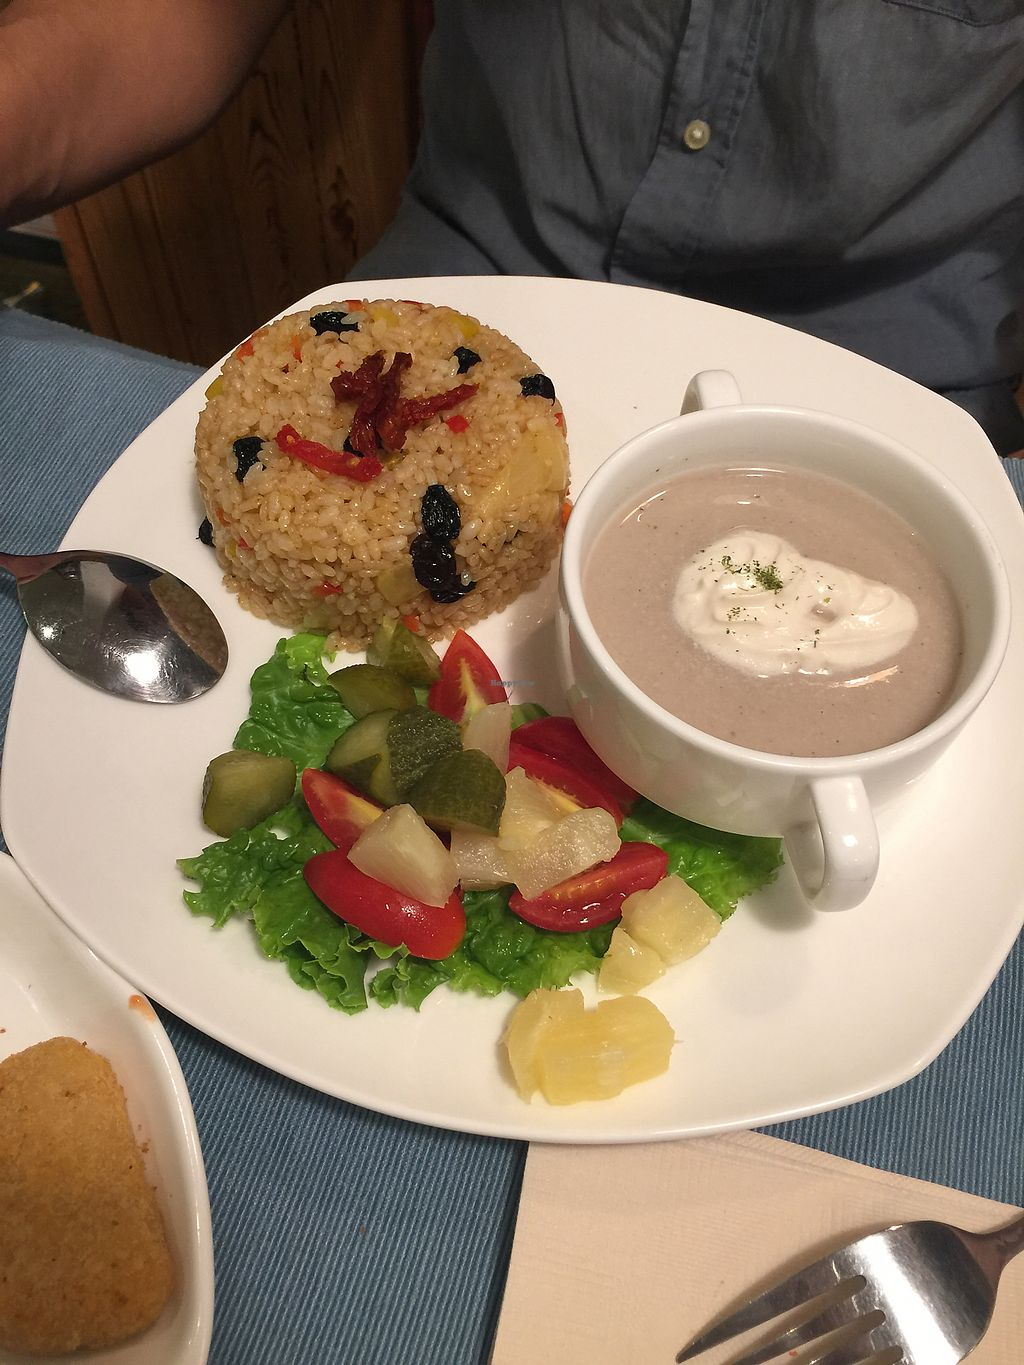 """Photo of Cloud Kitchen  by <a href=""""/members/profile/DanielleRosander"""">DanielleRosander</a> <br/>mushroom soup was underwhelming, rice seems suited for chinese tastes <br/> September 16, 2017  - <a href='/contact/abuse/image/64283/304981'>Report</a>"""